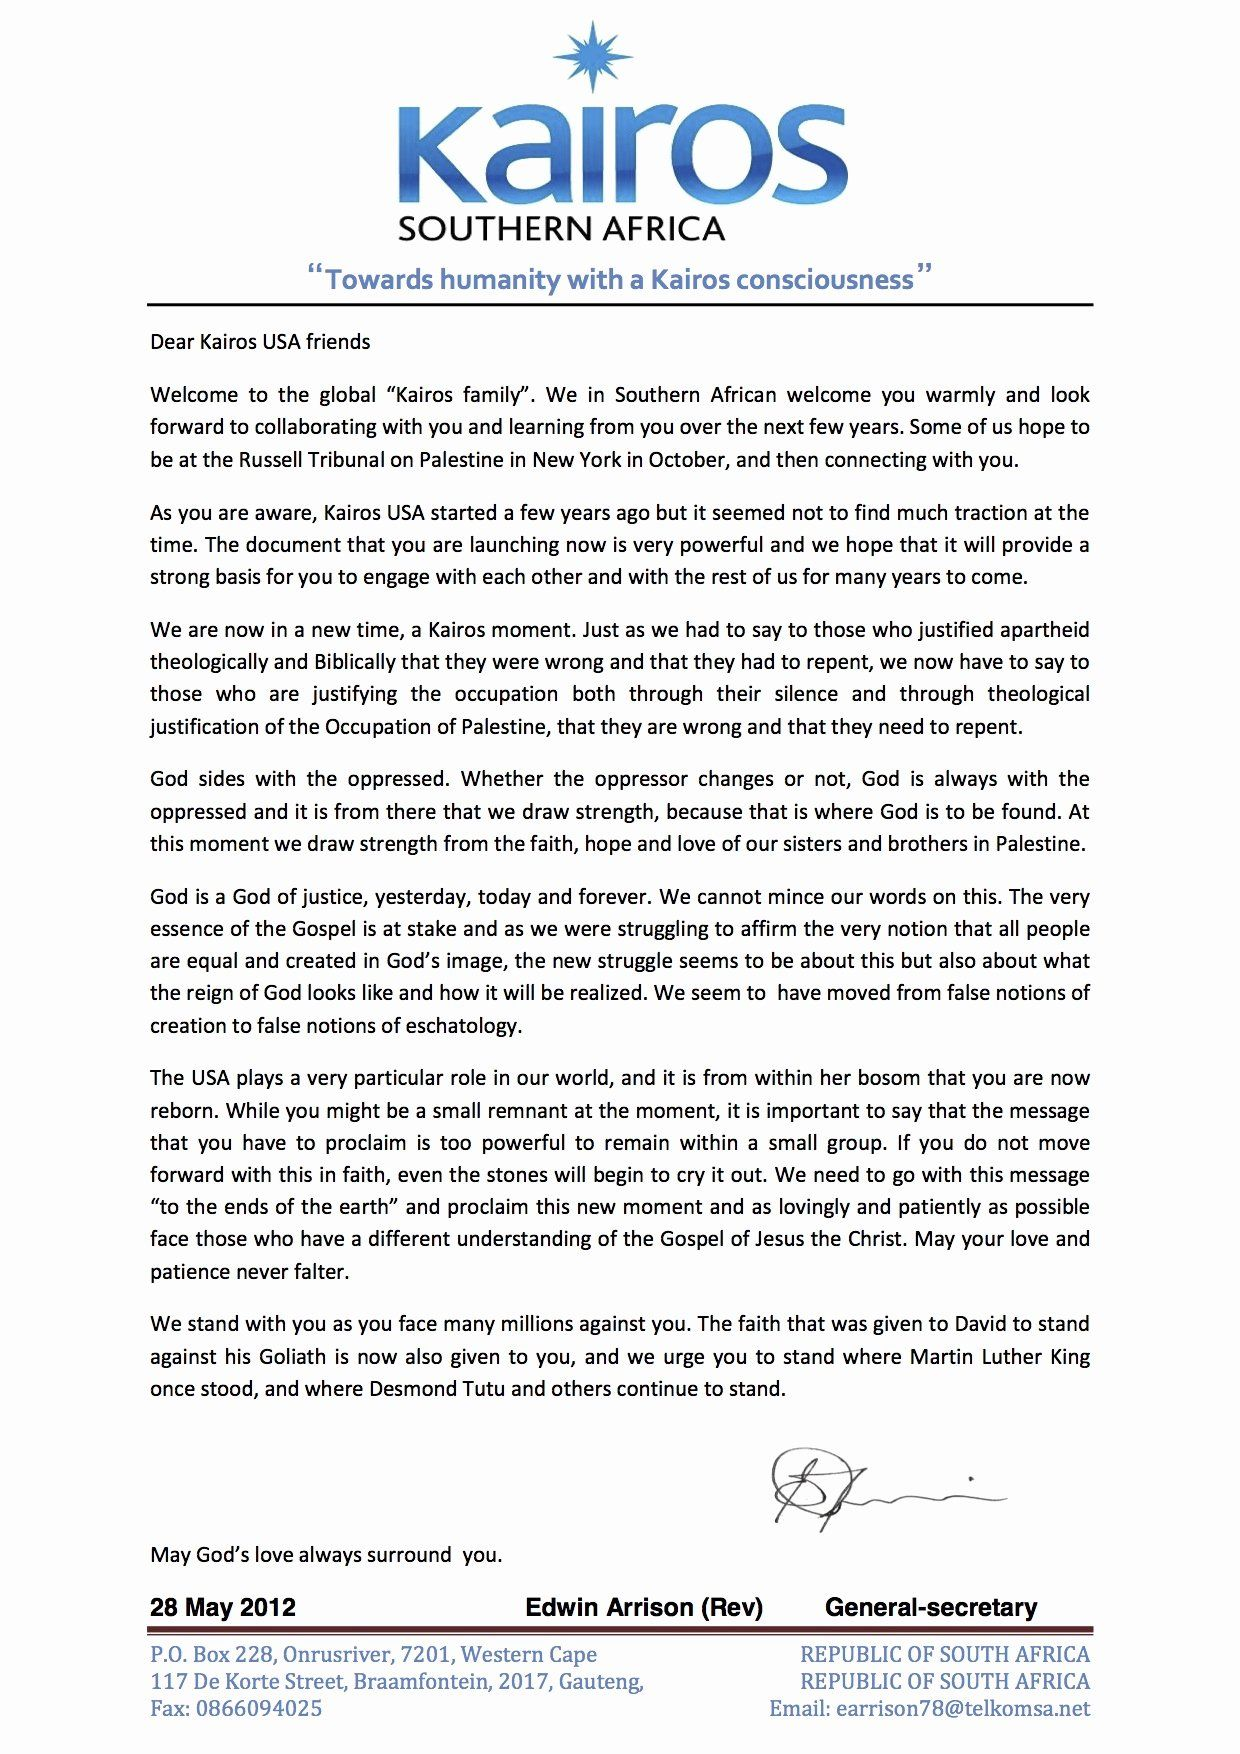 20 Kairos Retreat Letter Examples Dannybarrantes Template Newsletter Templates Word Letter Of Encouragement Letter Sample Examples of kairos letters from parents